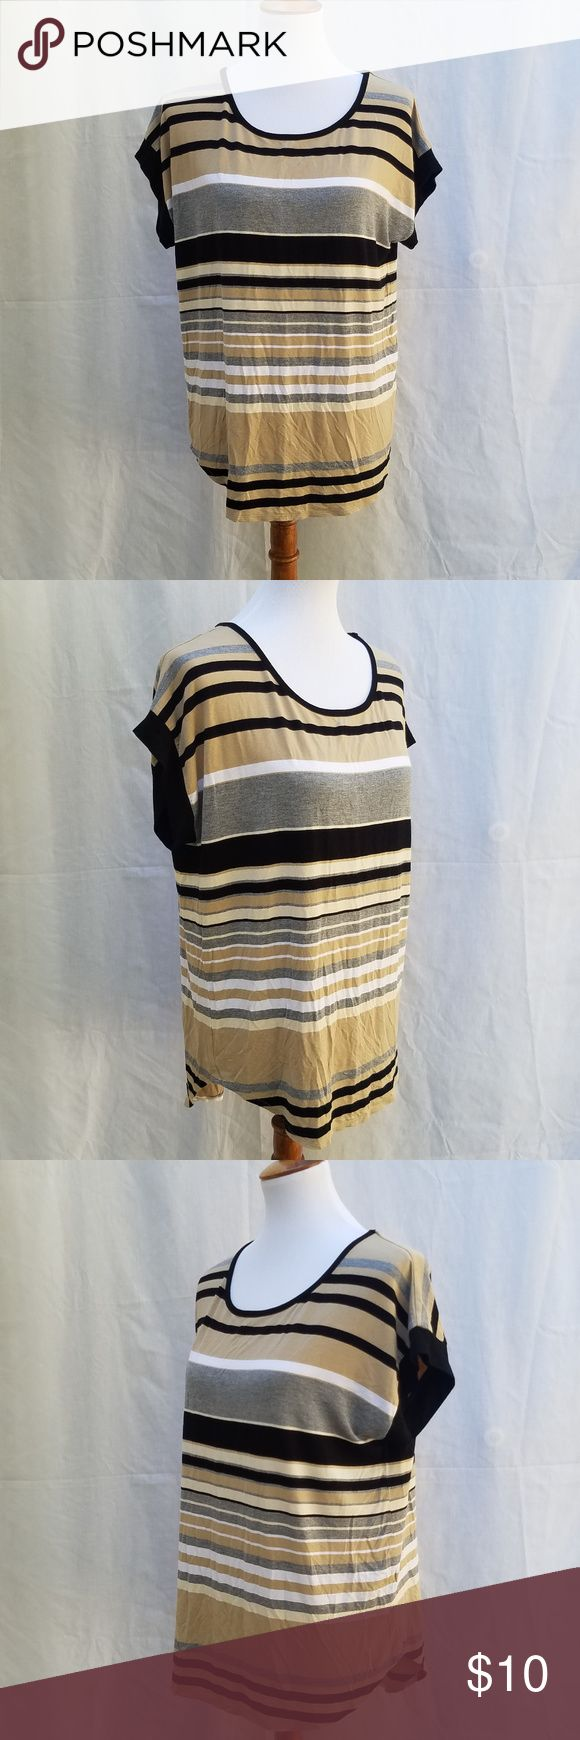 Cable & Gauge striped short sleeve top Cable & Gauge striped short sleeve top, tan, white, grey and black striped lightweight top with button detail down the back.  Like new condition, Size Large. Cable & Gauge Tops Tunics